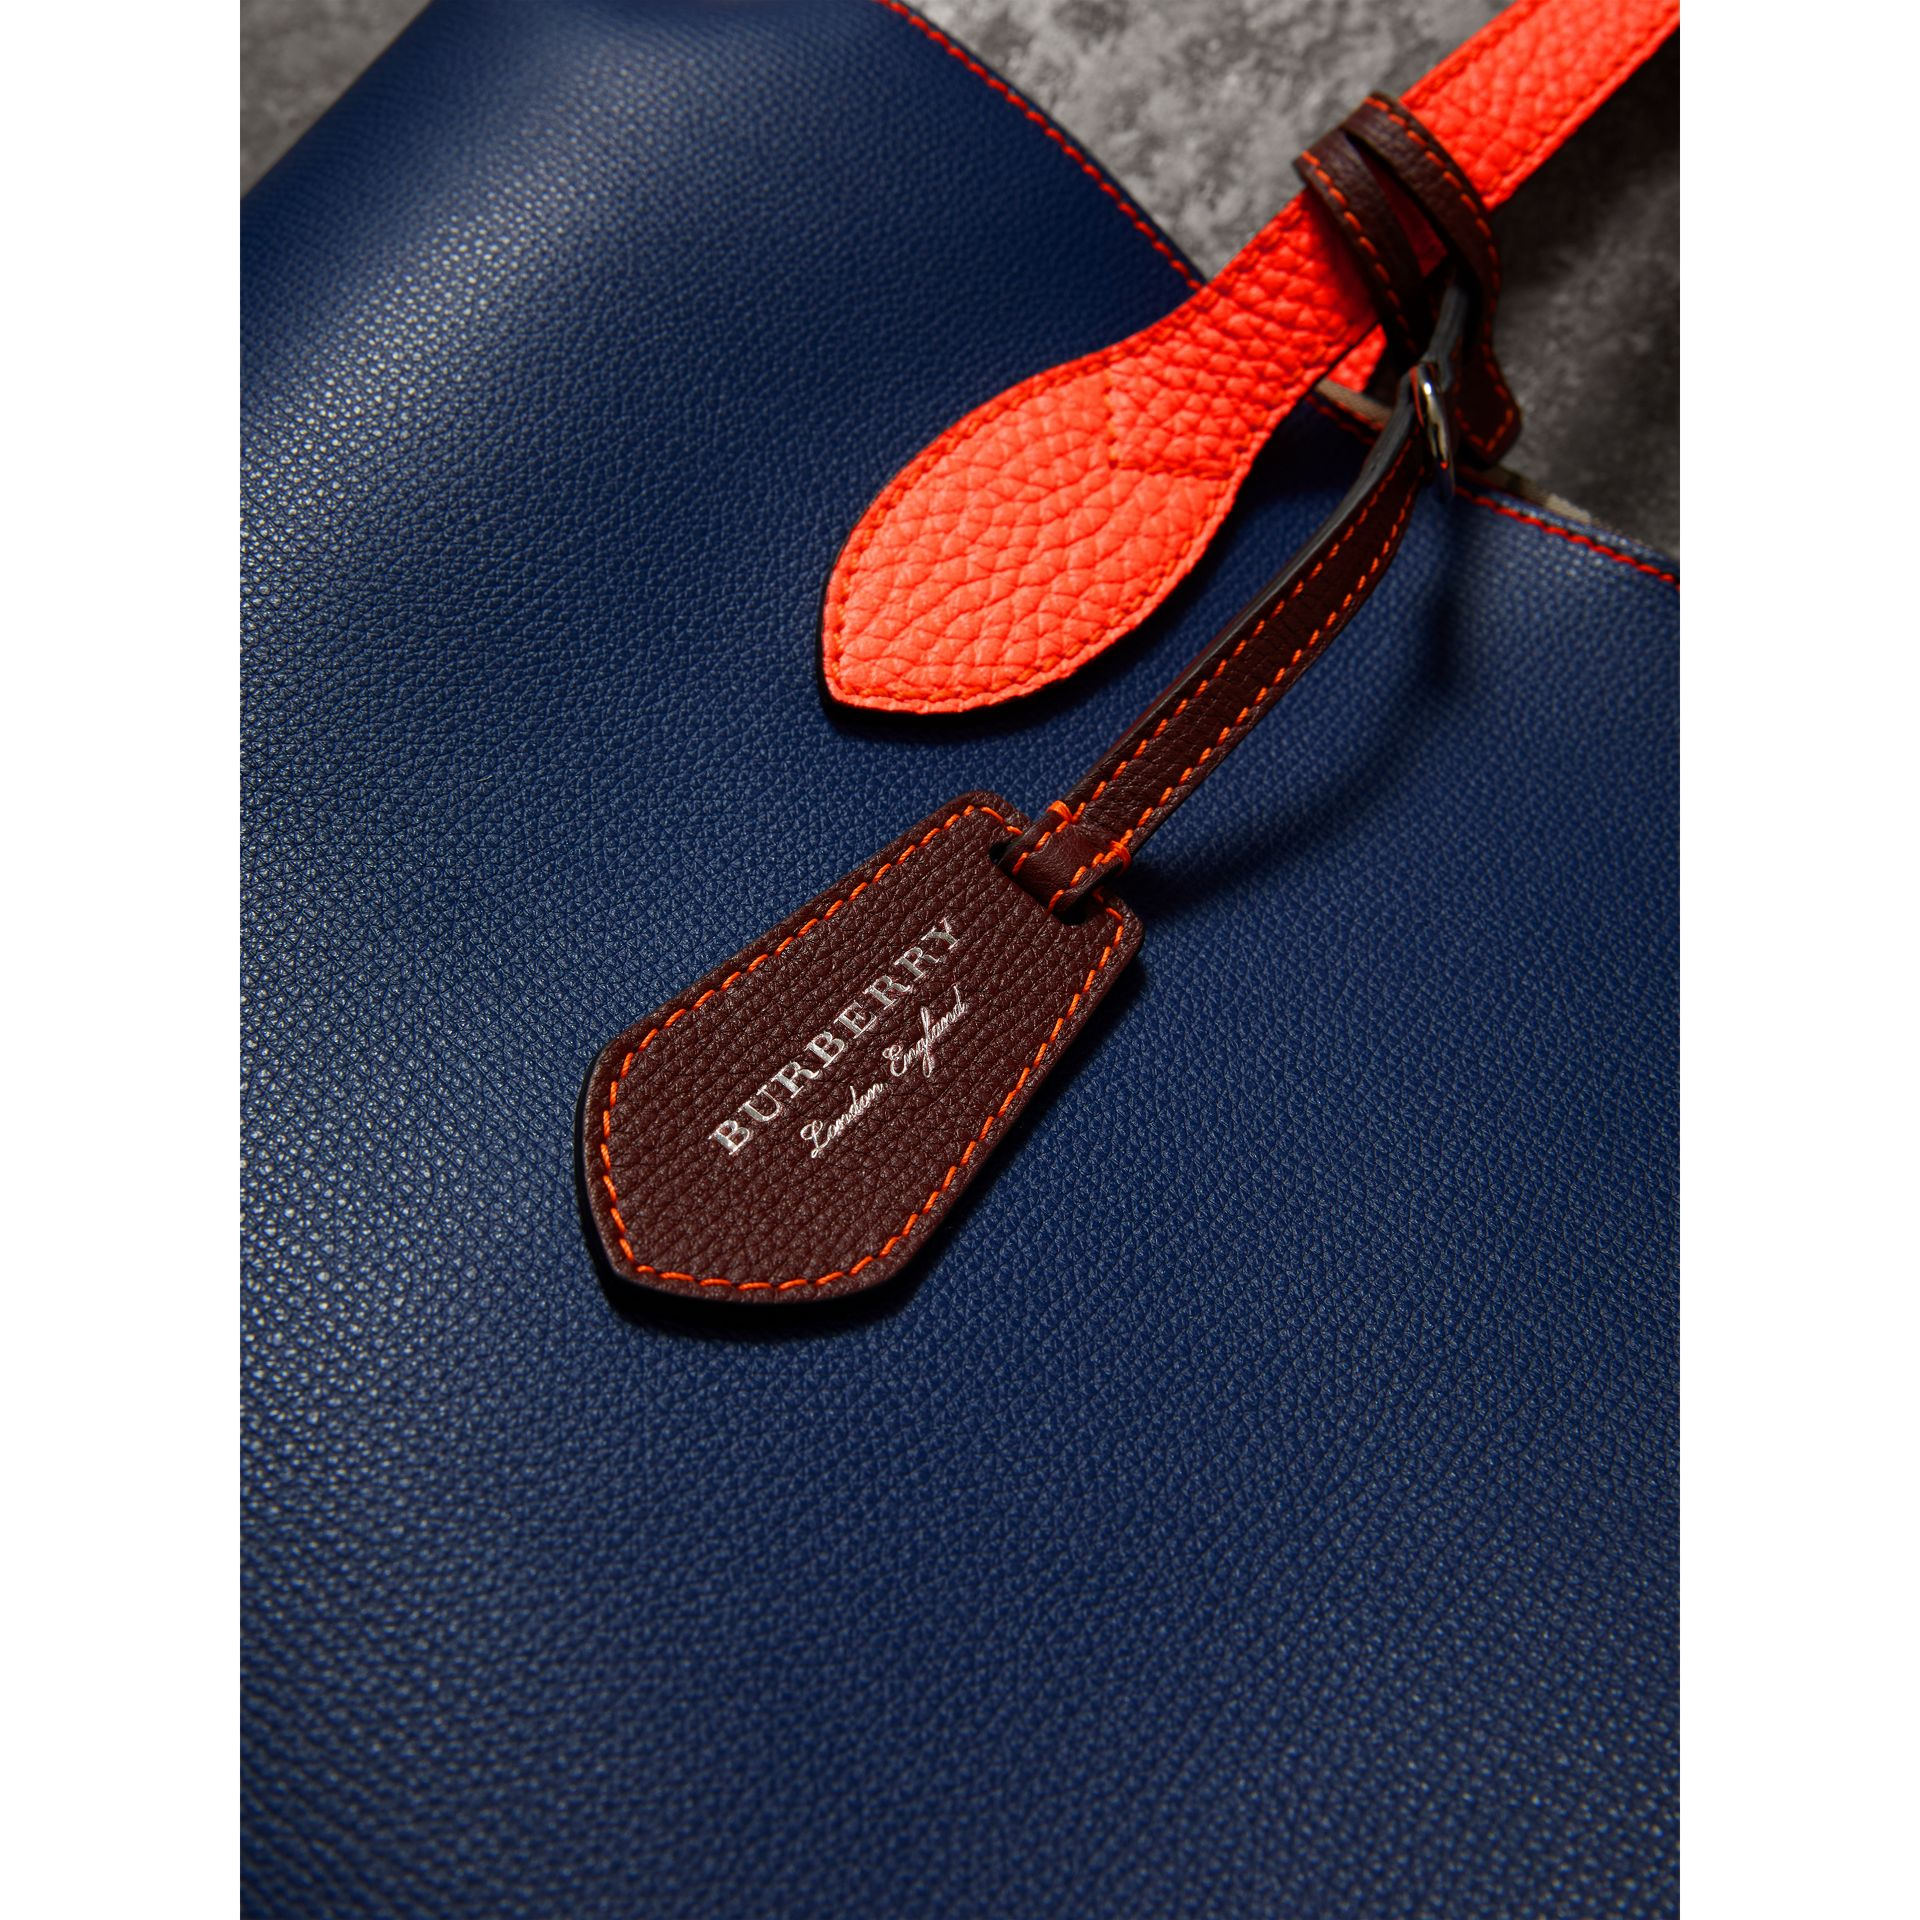 Medium Two-tone Coated Leather Tote in Dark Ultramarine | Burberry United Kingdom - gallery image 1